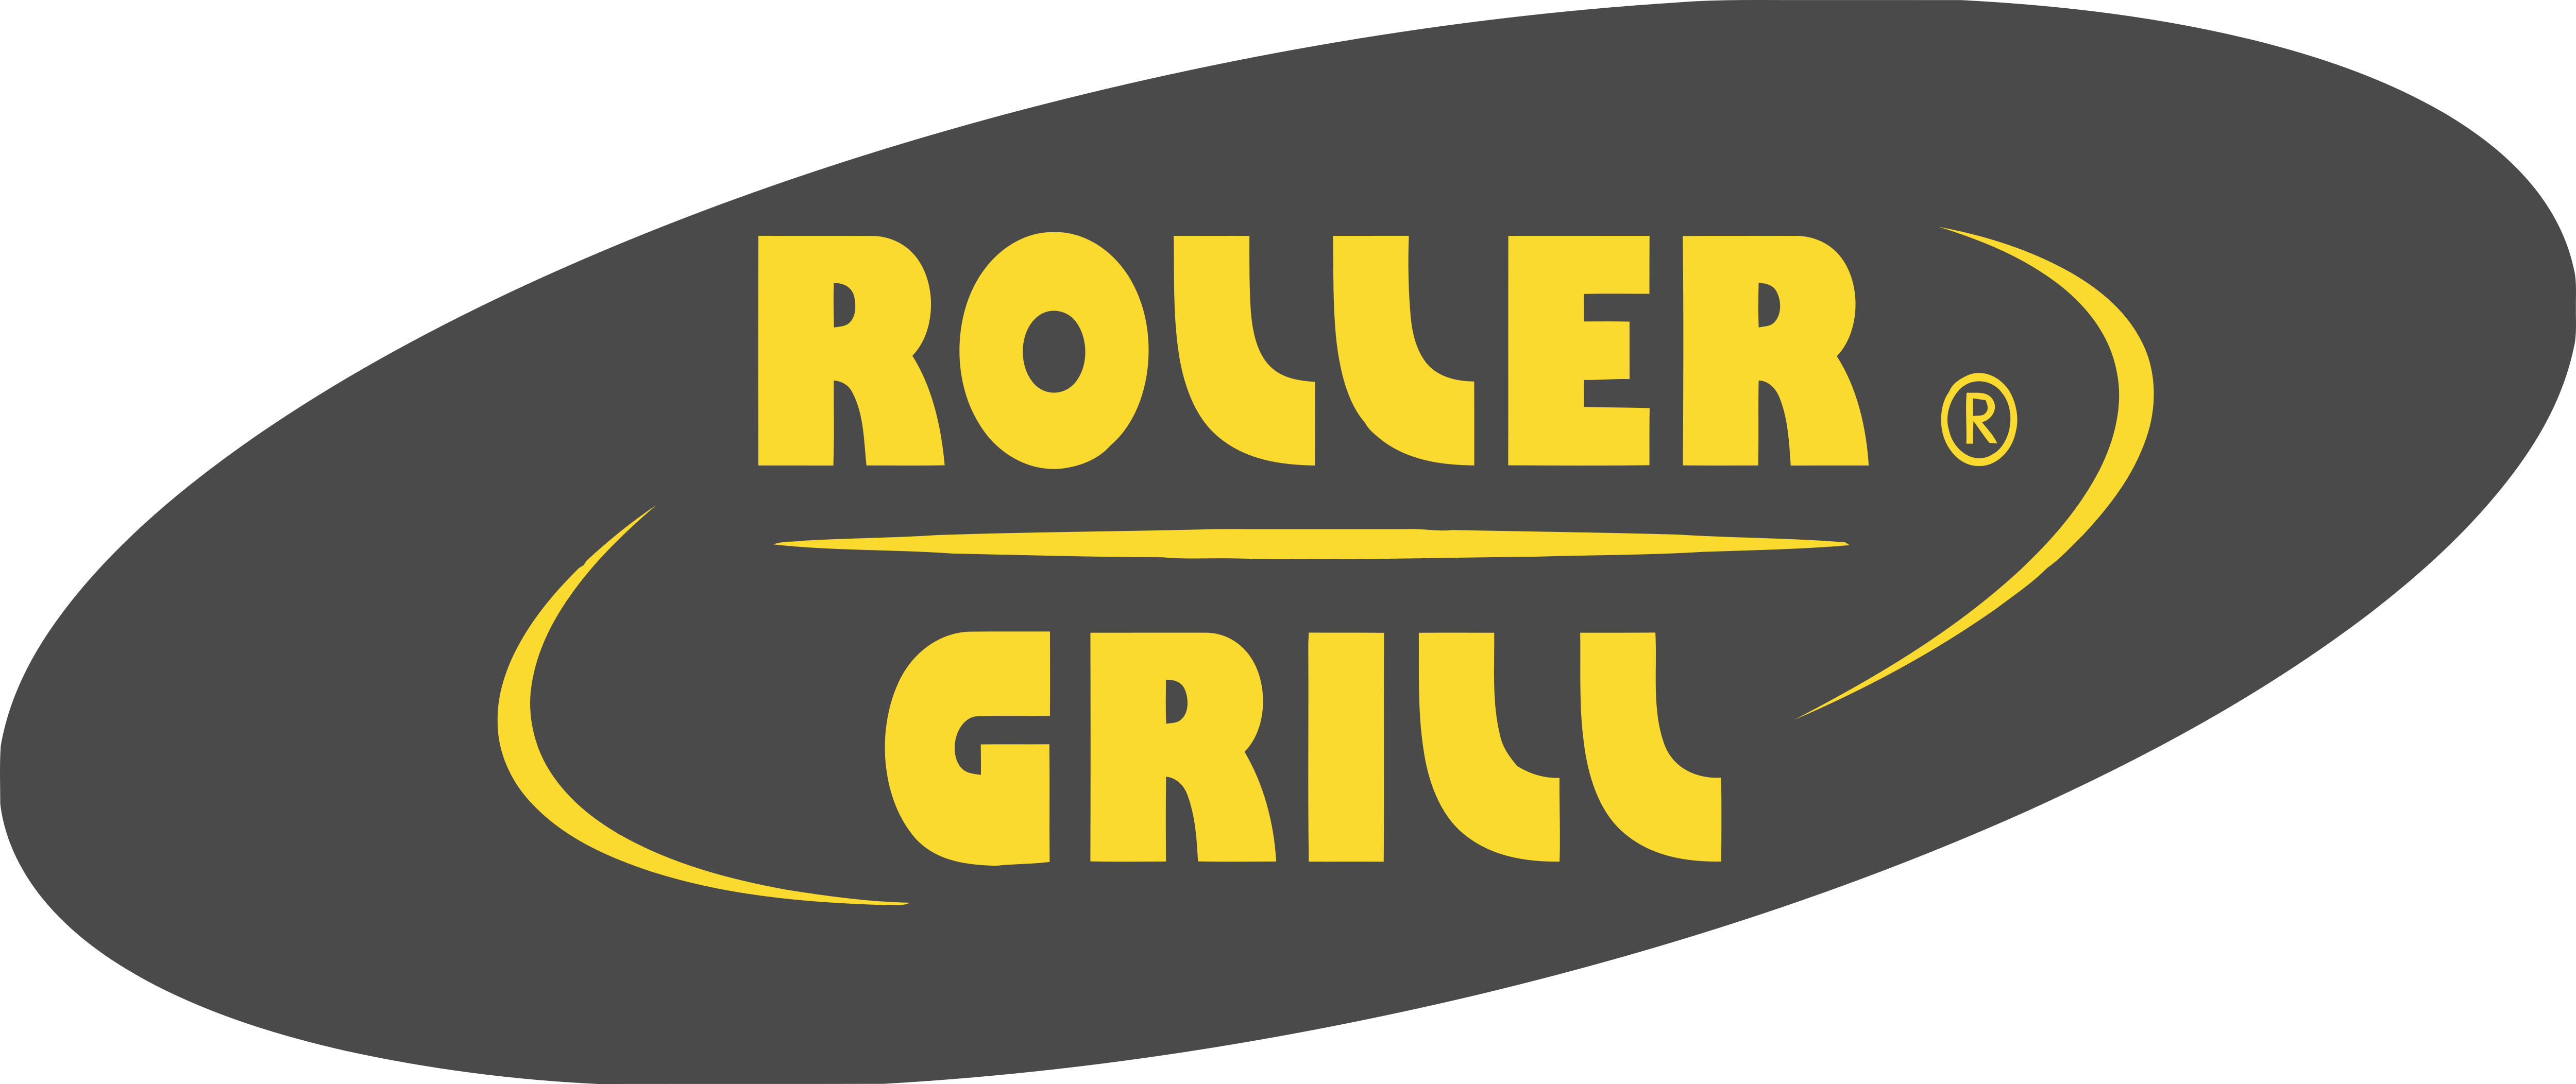 ROLLER GRILLロゴ